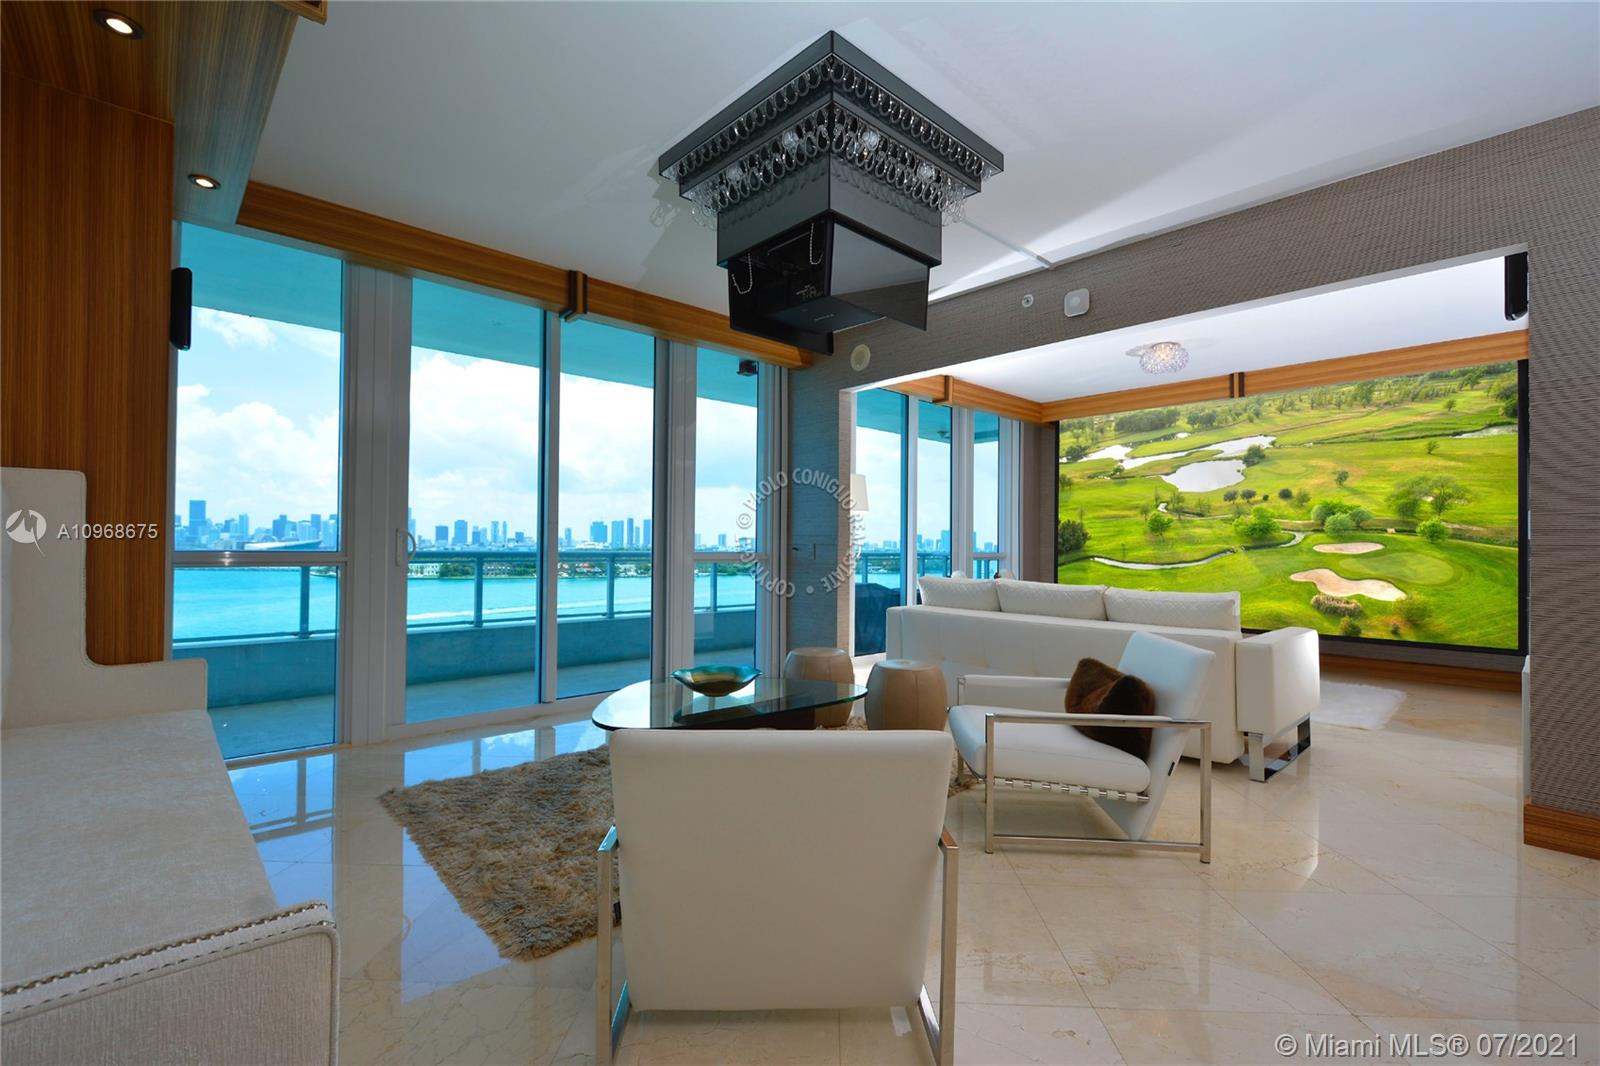 This pristine residence will captivate you with its unobstructed, sweeping water and skyline views and oversized balcony .Top-of-the-line SubZero and Gaggenau  appliances and modern finishes such as Luxor marble  floors throughout, 9'ceilings, Crestron  smart home technology including 140 screen /projector . A generous split floor plan provides plenty of natural light, each bedroom has balcony access and water views, bathrooms are outfitted with spa/steam  room  fixtures. With no luxury compromised, Bentley bay  residents can enjoy amenities including a vanishing-edge pool deck, jacuzzis ,resort-style poolside service and a state-of-the-art fitness facility and spa, 24-hr concierge.West Avenue  offering many Restaurant and soon a park will be open in front